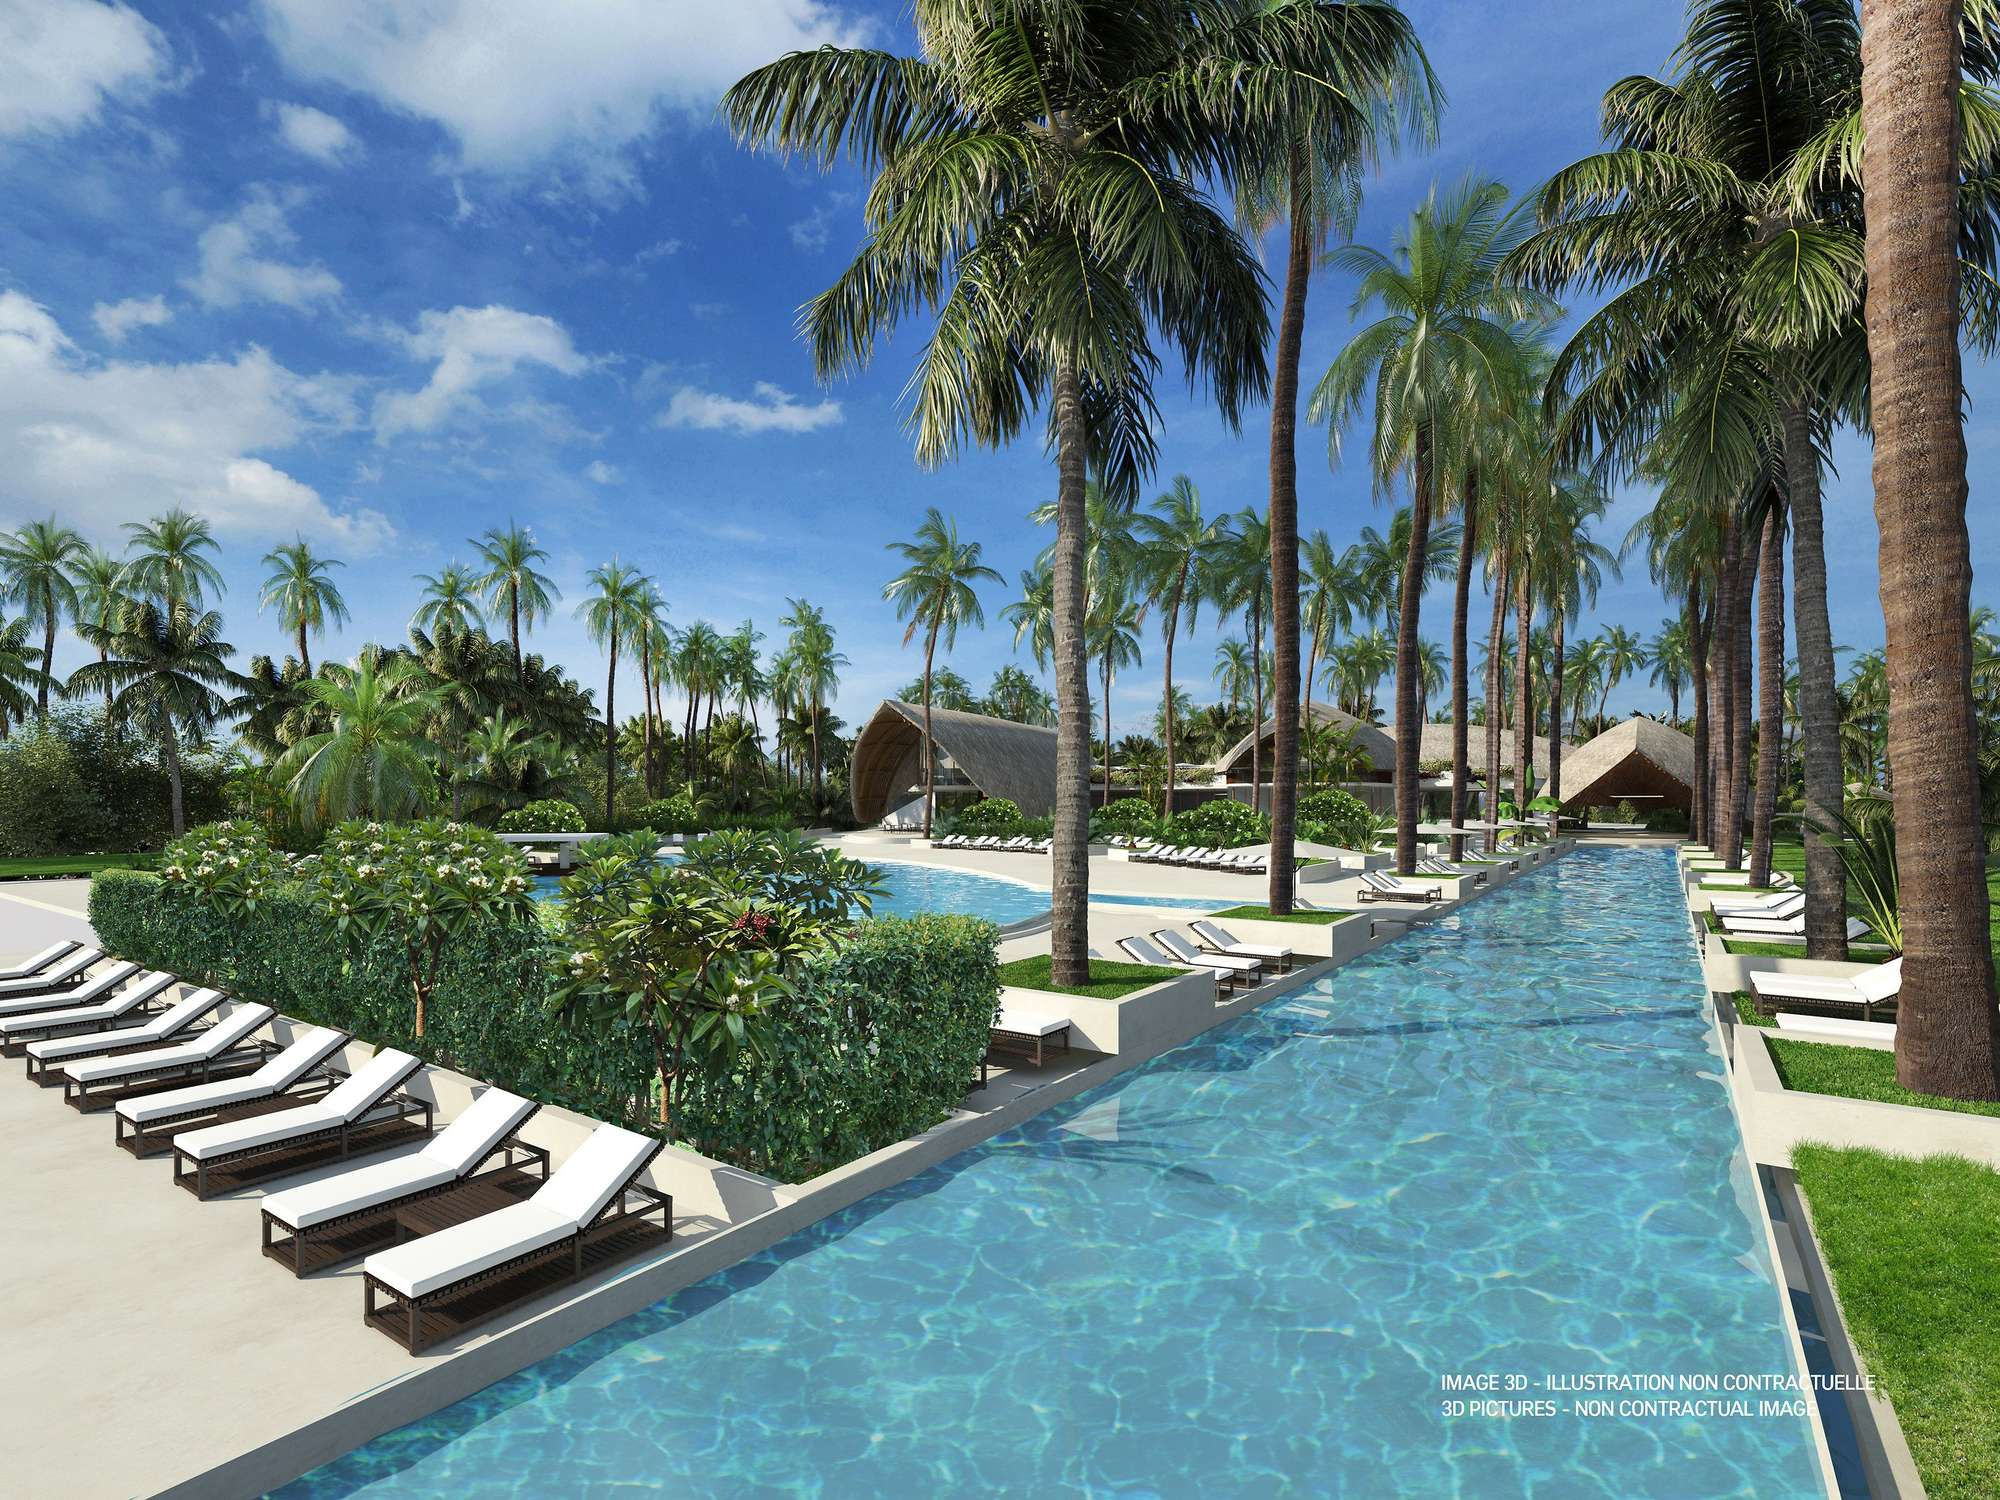 https___ns.clubmed.com_dream_EXCLUSIVE_COLLECTION_Resorts_Miches_Playa_Esmeralda_183325-ibbigsauci-swhr